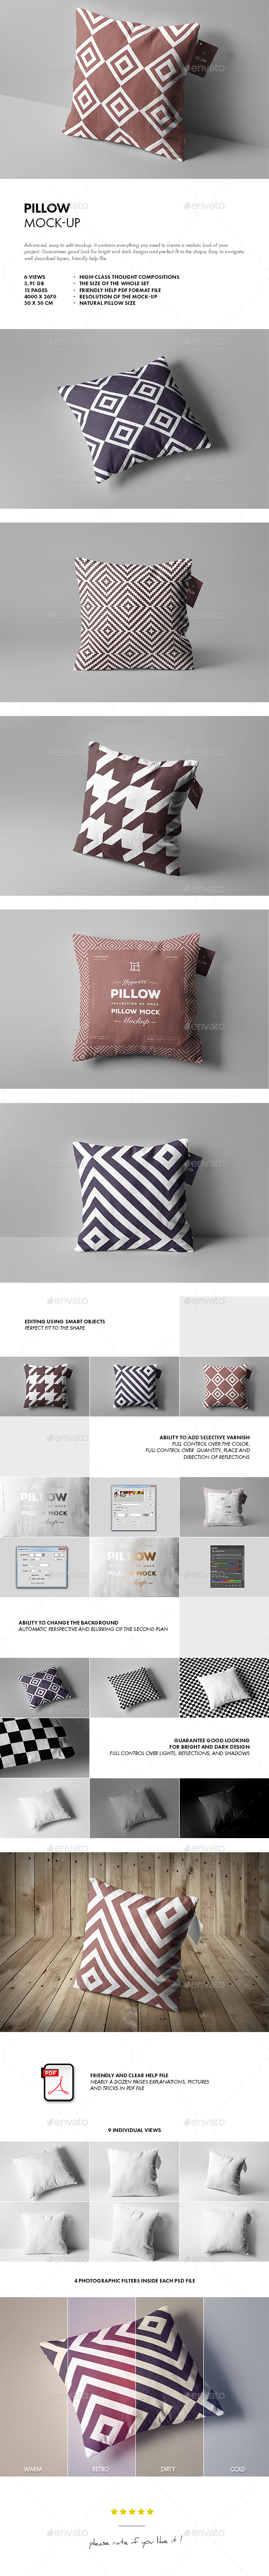 GraphicRiver Pillow Mock-up 20811428